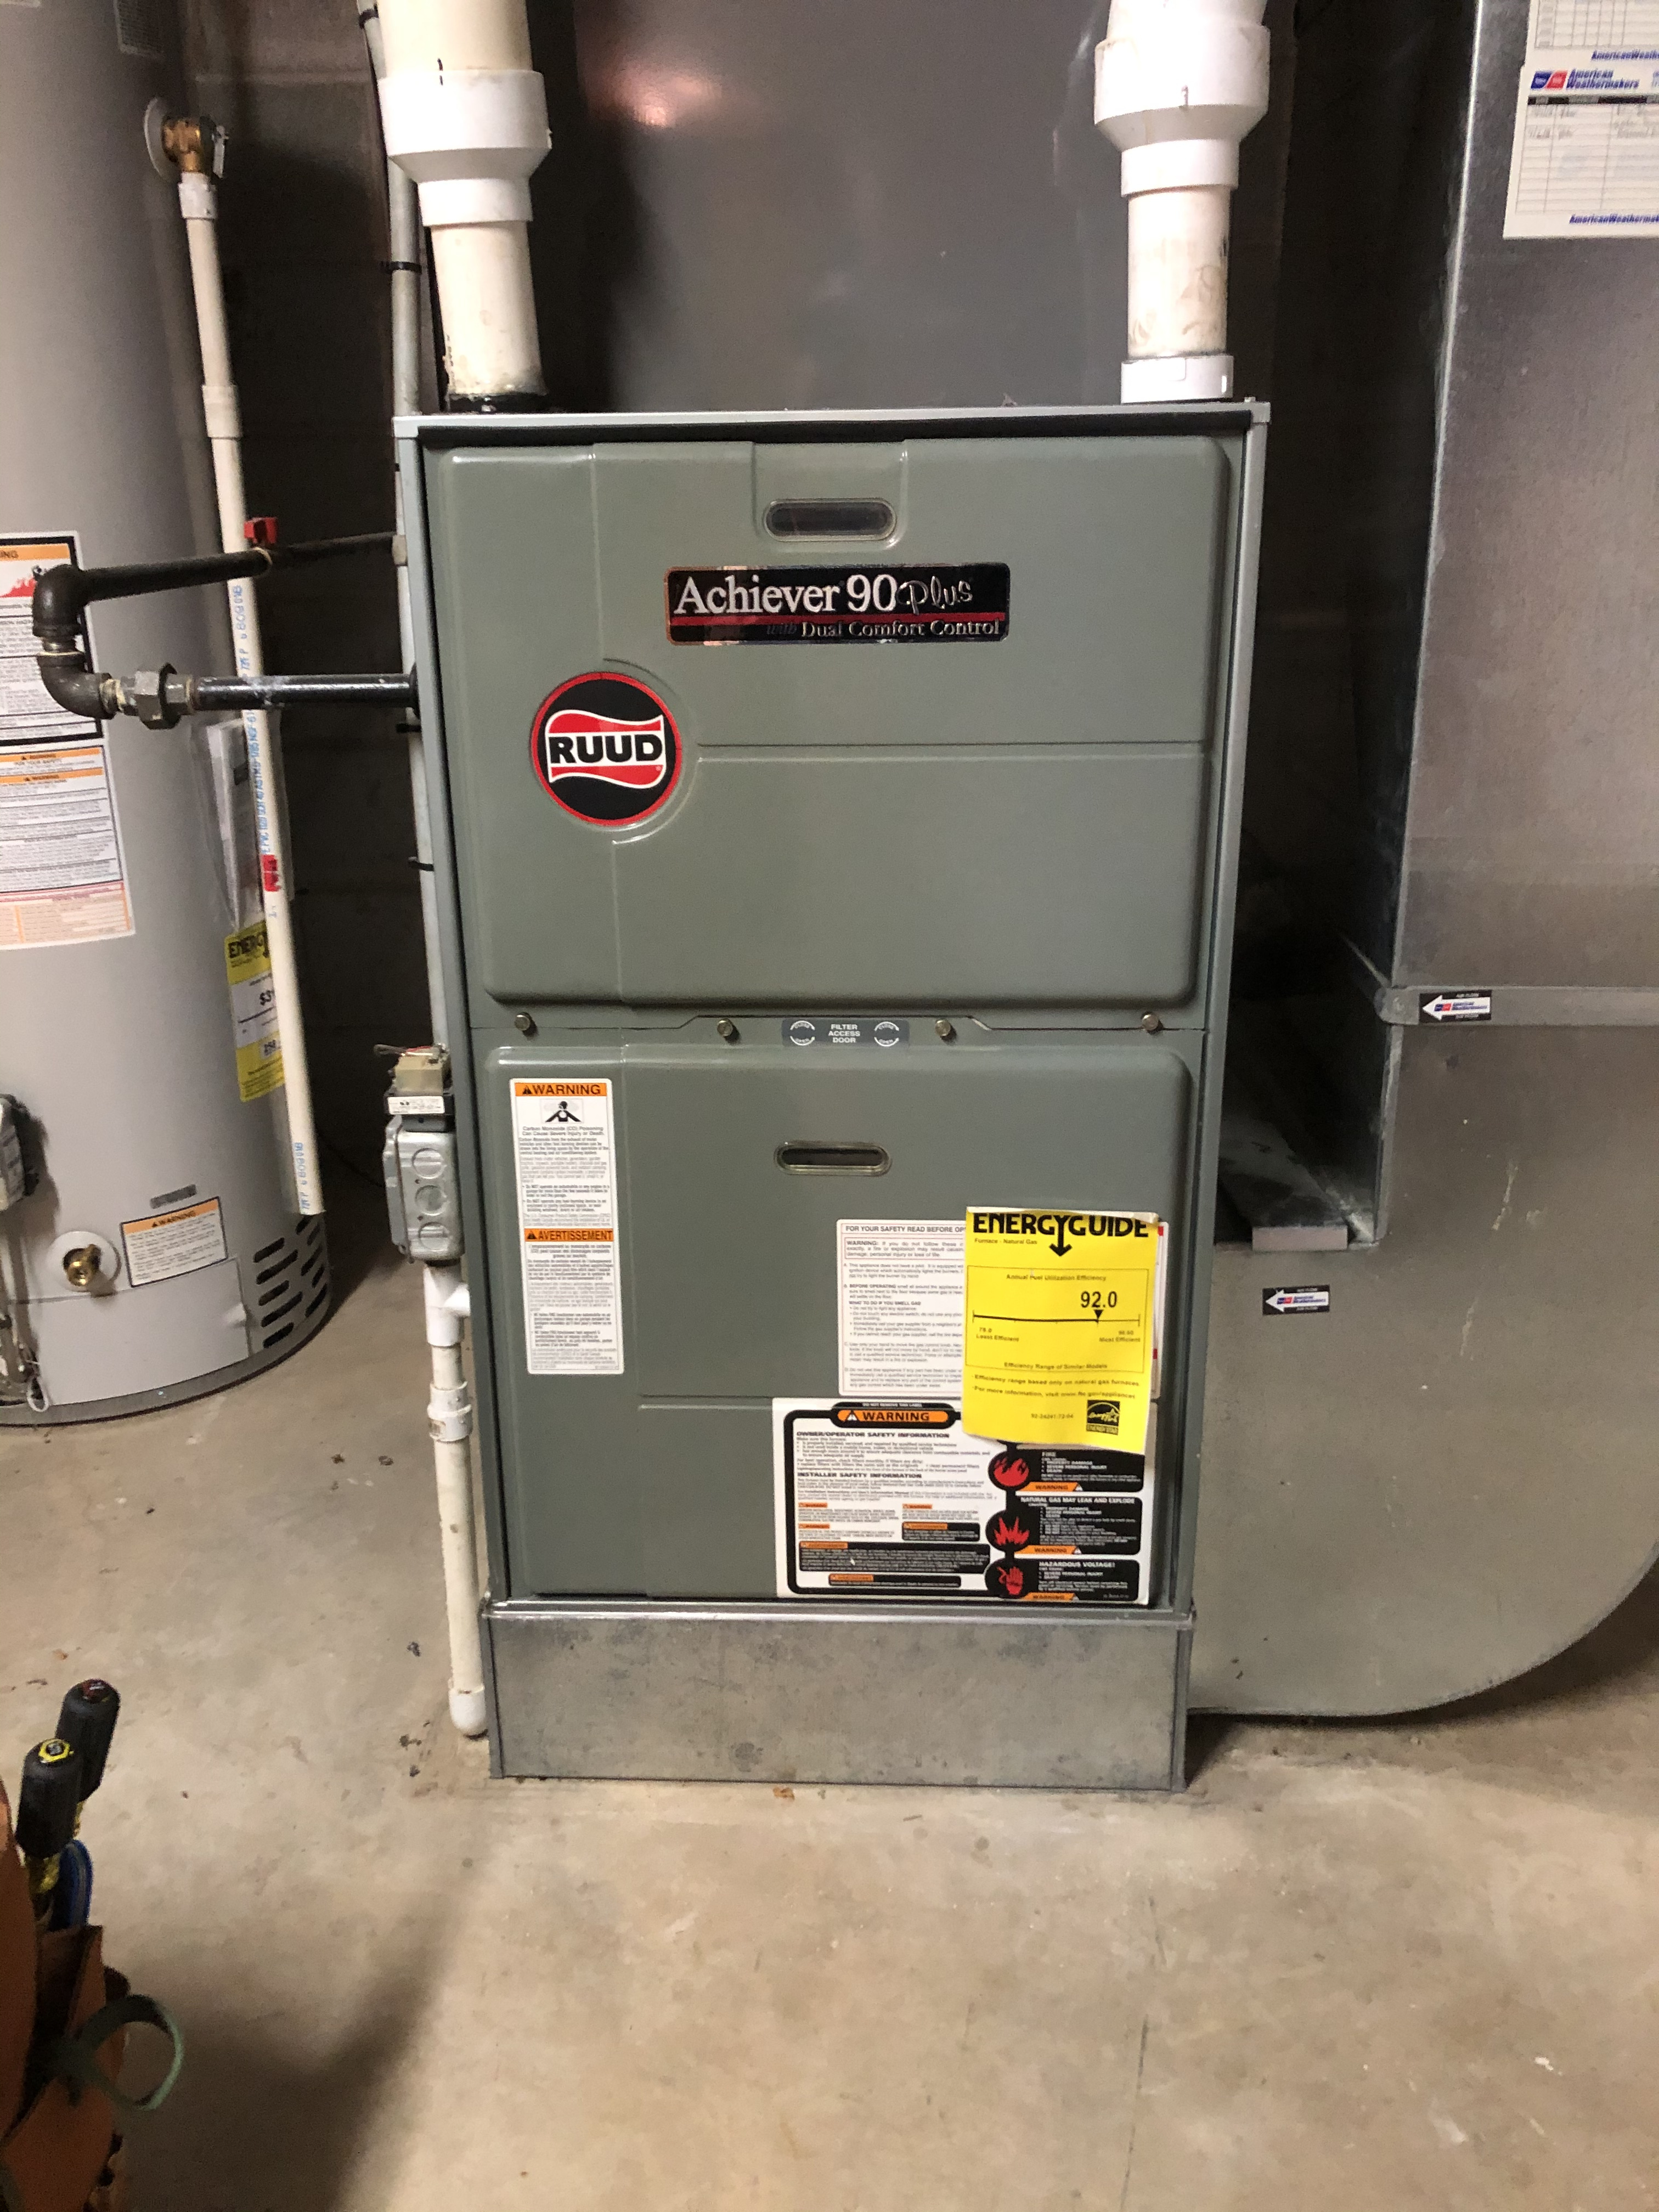 Keep your Ruud furnace running strong. Call American Weathermakers and schedule an appointment today.